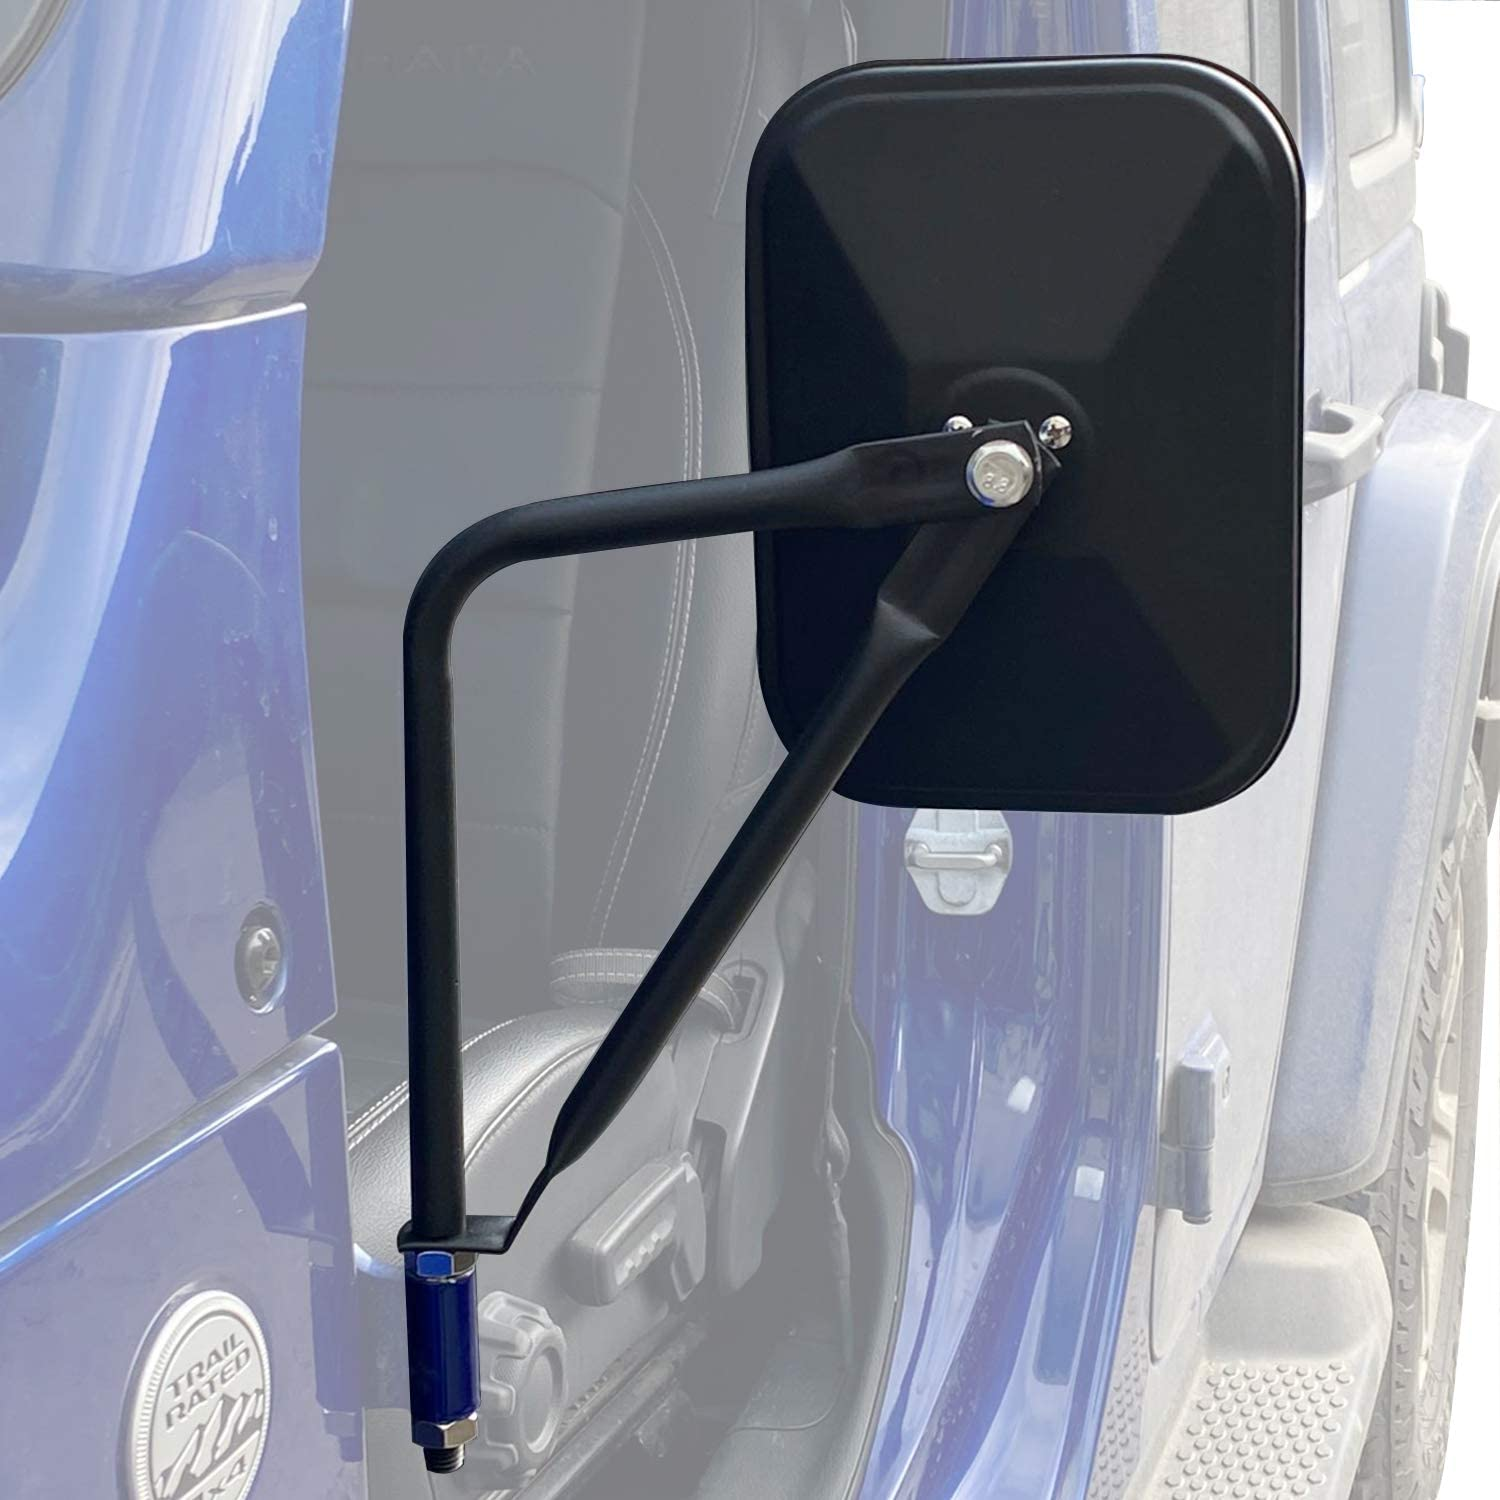 2Pack JUSTTOP Square Adventure Side View Mirrors for Jeep Wrangler CJ YJ TJ JK JL /& Unlimited,Quicker Install Door Hinge Mirror for Safe Doors Off Driving